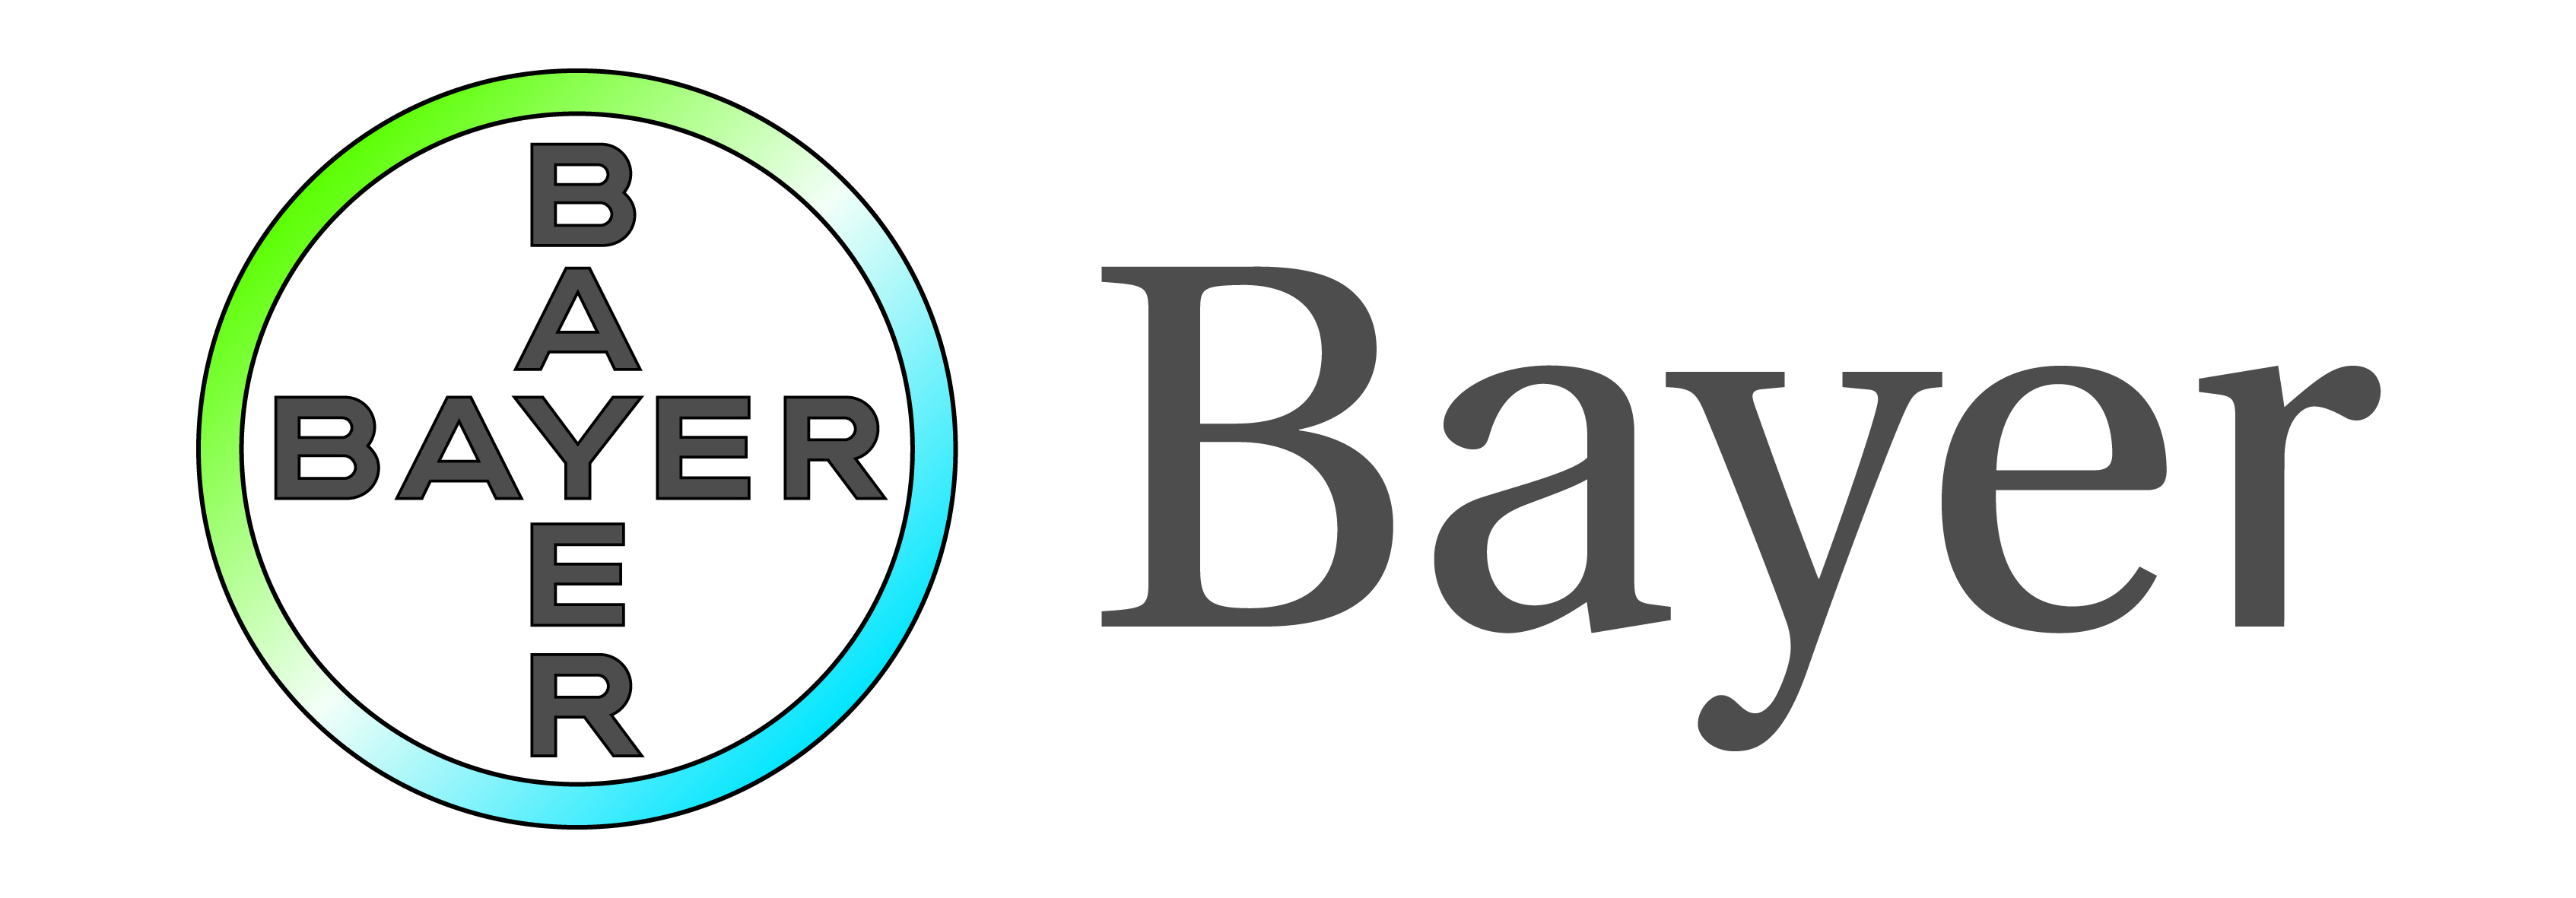 File:Logo Bayer.jpg  Wikimedia Commons